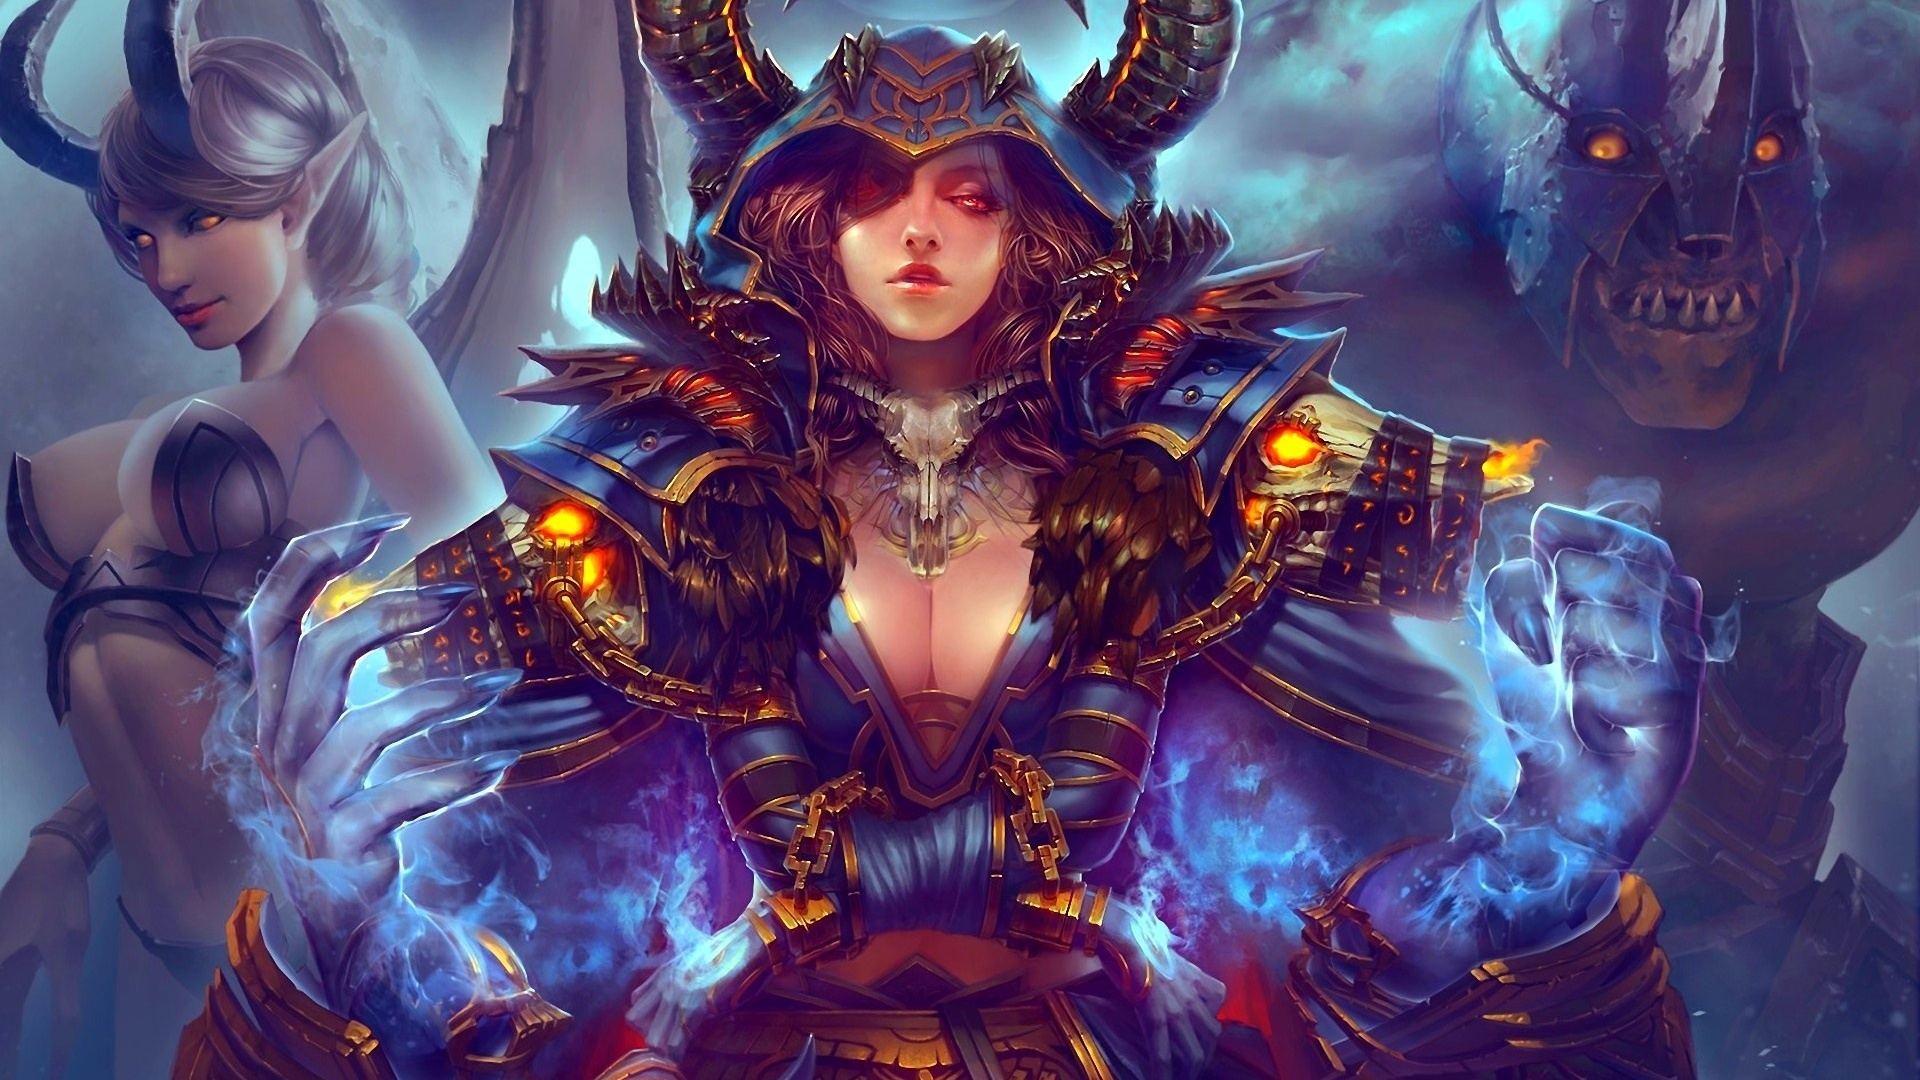 Jizzart word of warcraft sex image